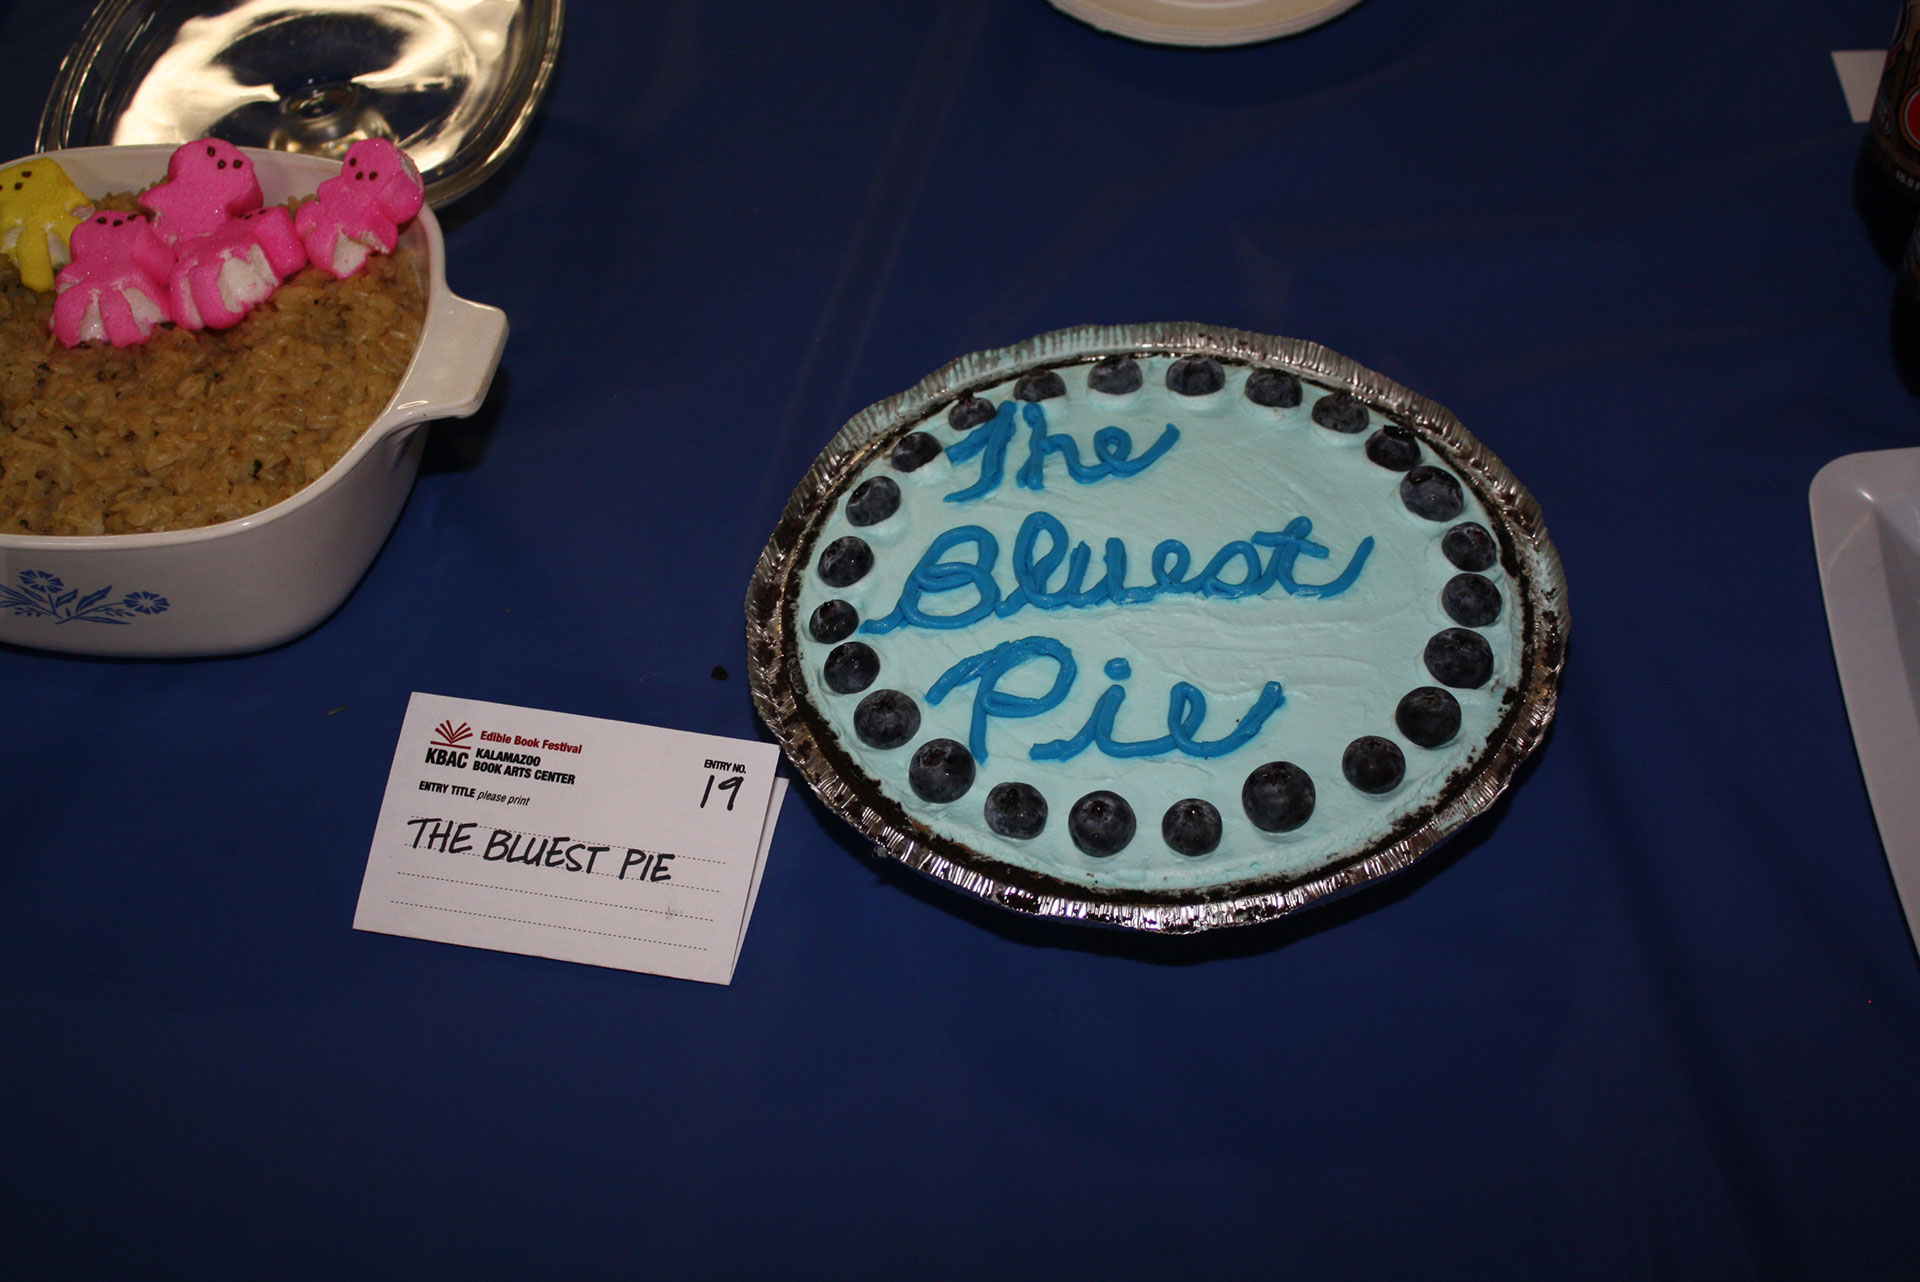 The Bluest Pie, by Lauren Hoepner